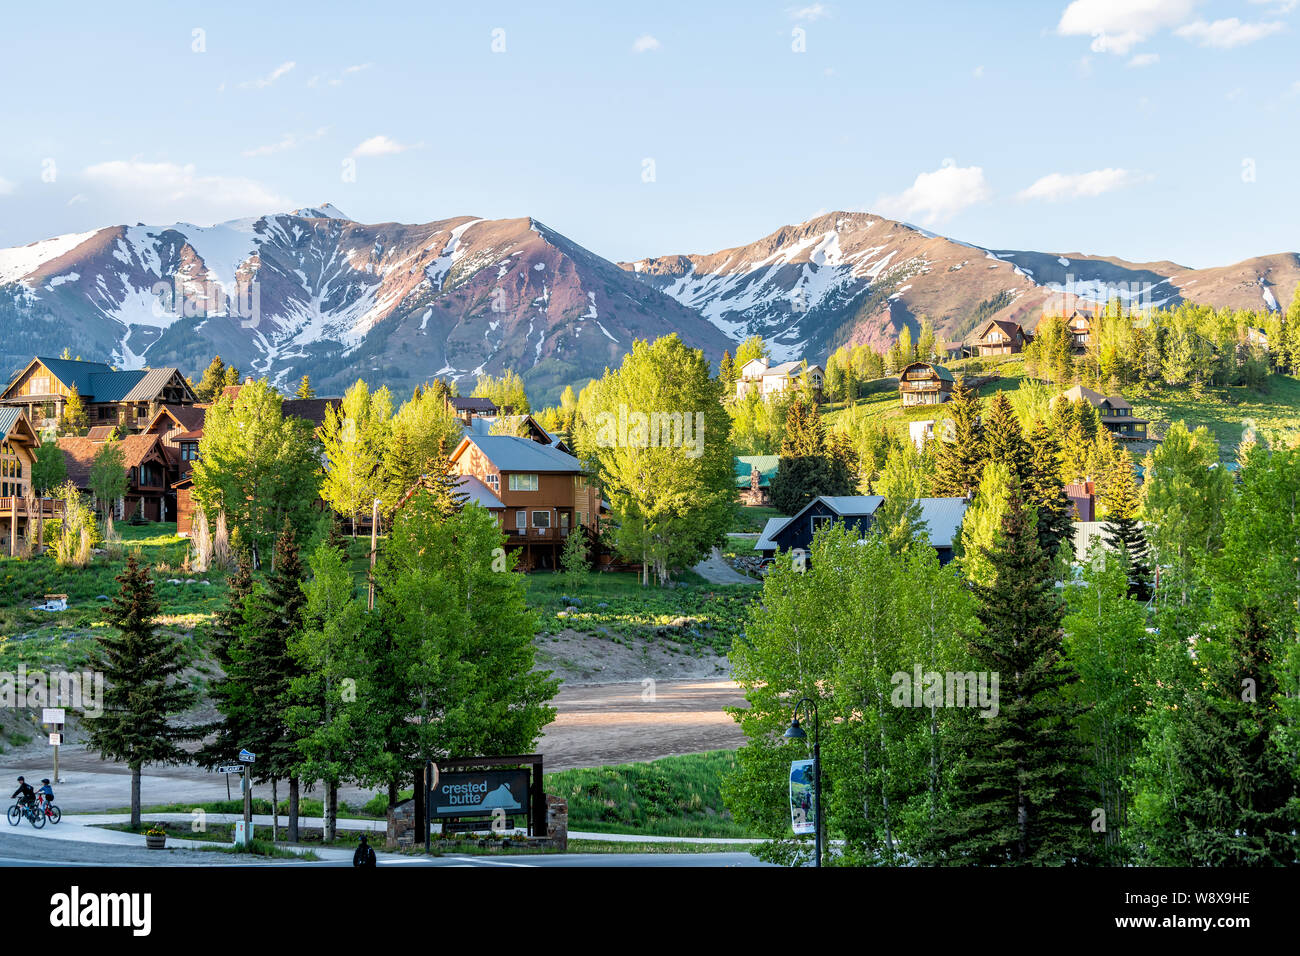 Mount Crested Butte, USA - June 21, 2019: Colorado village in summer with colorful sunset by houses on hills with green trees and main street road Stock Photo